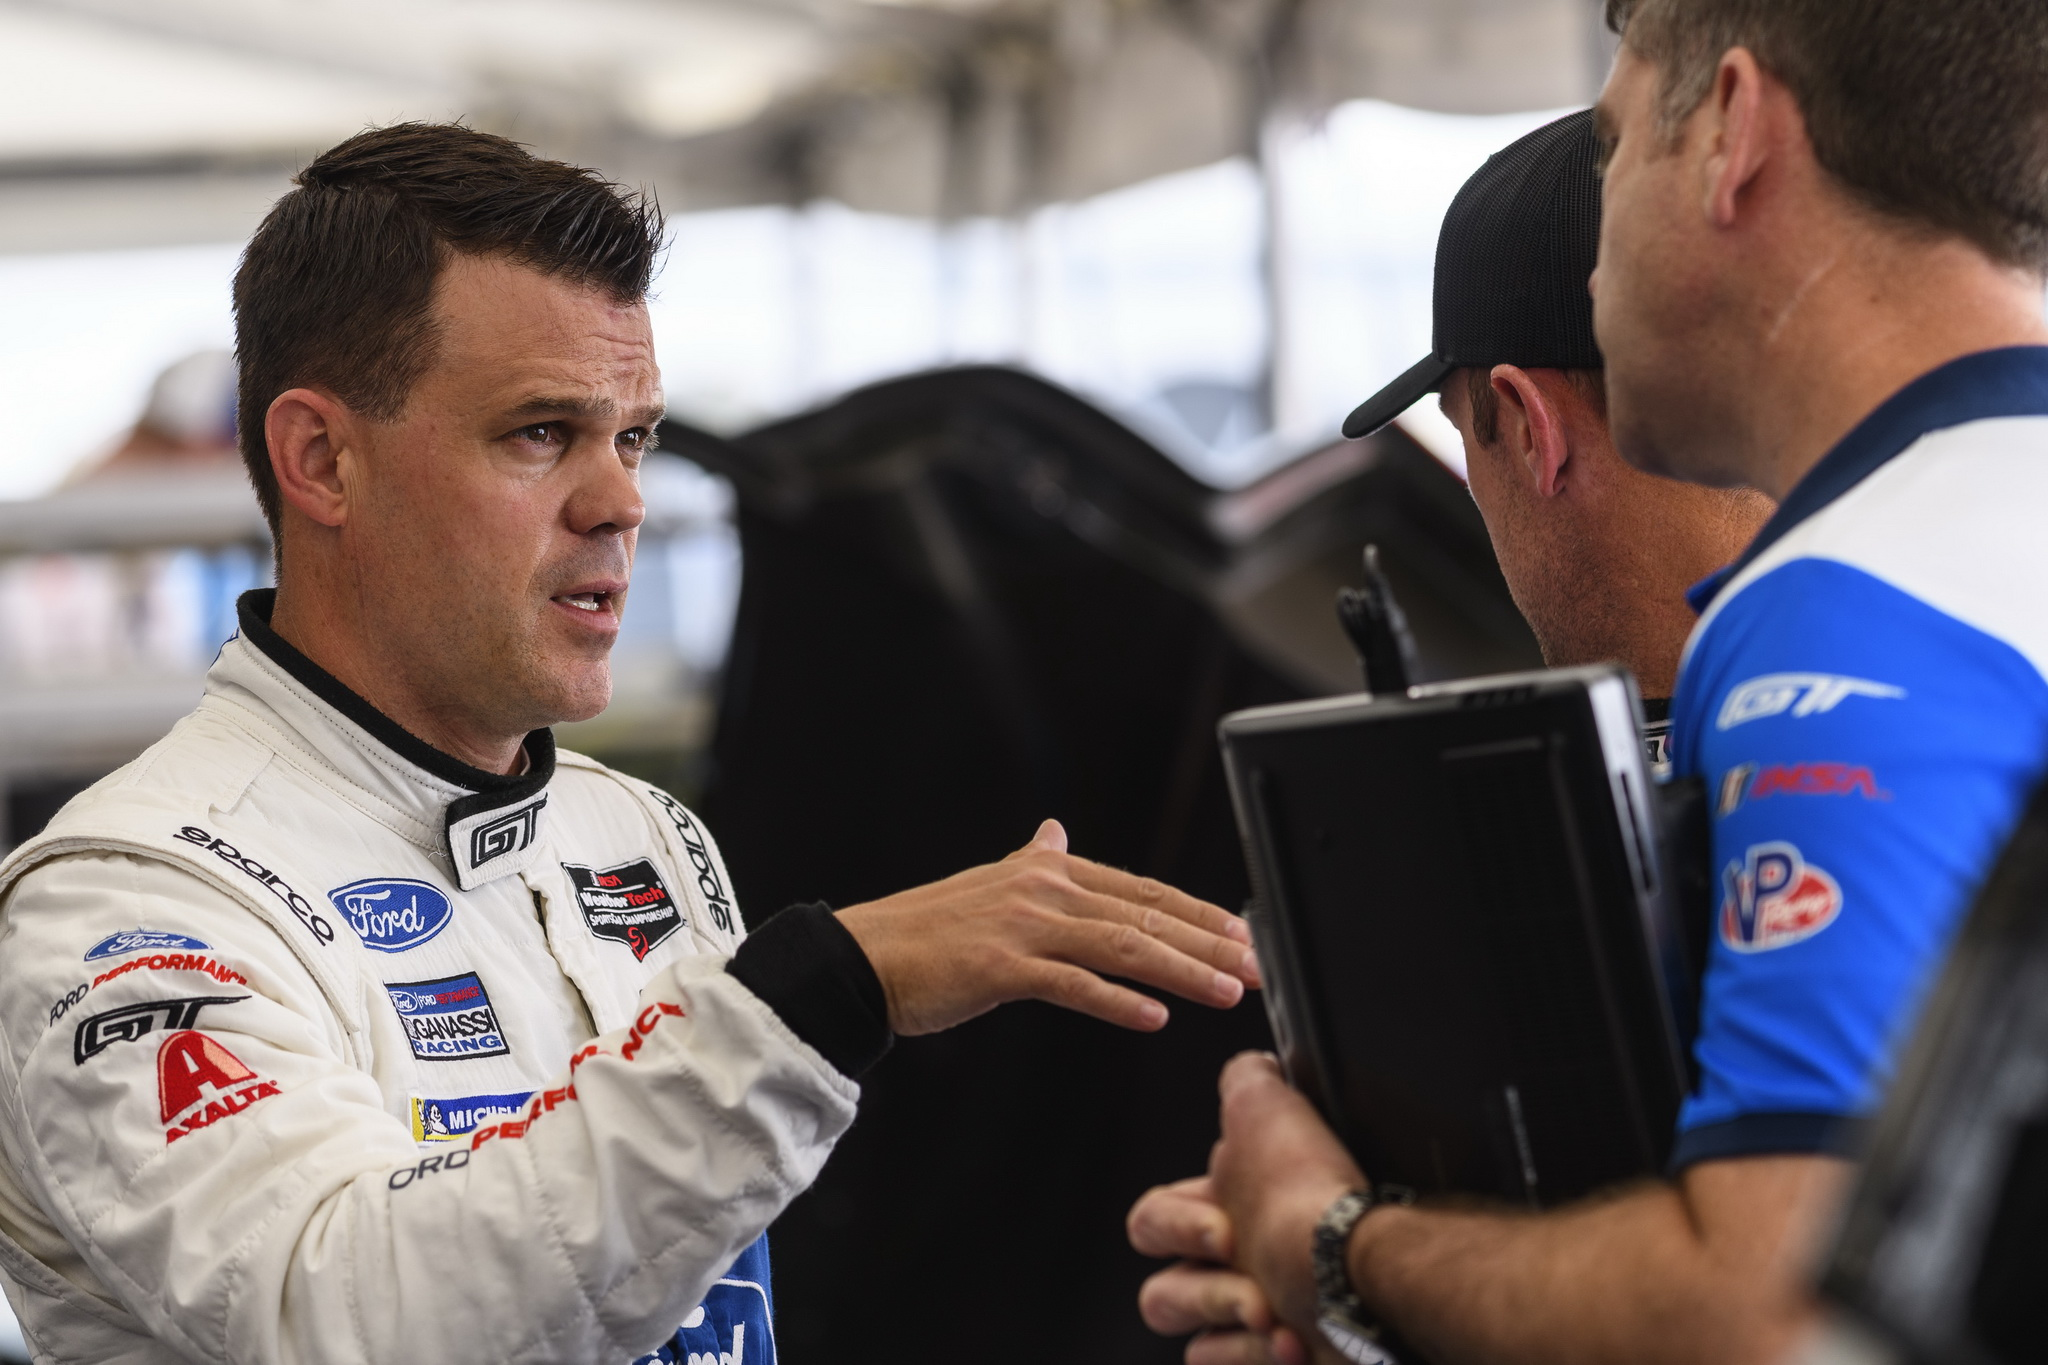 Ford Chip Ganassi Racing Aims for Second-Consecutive Overall Win at Lime Rock Park